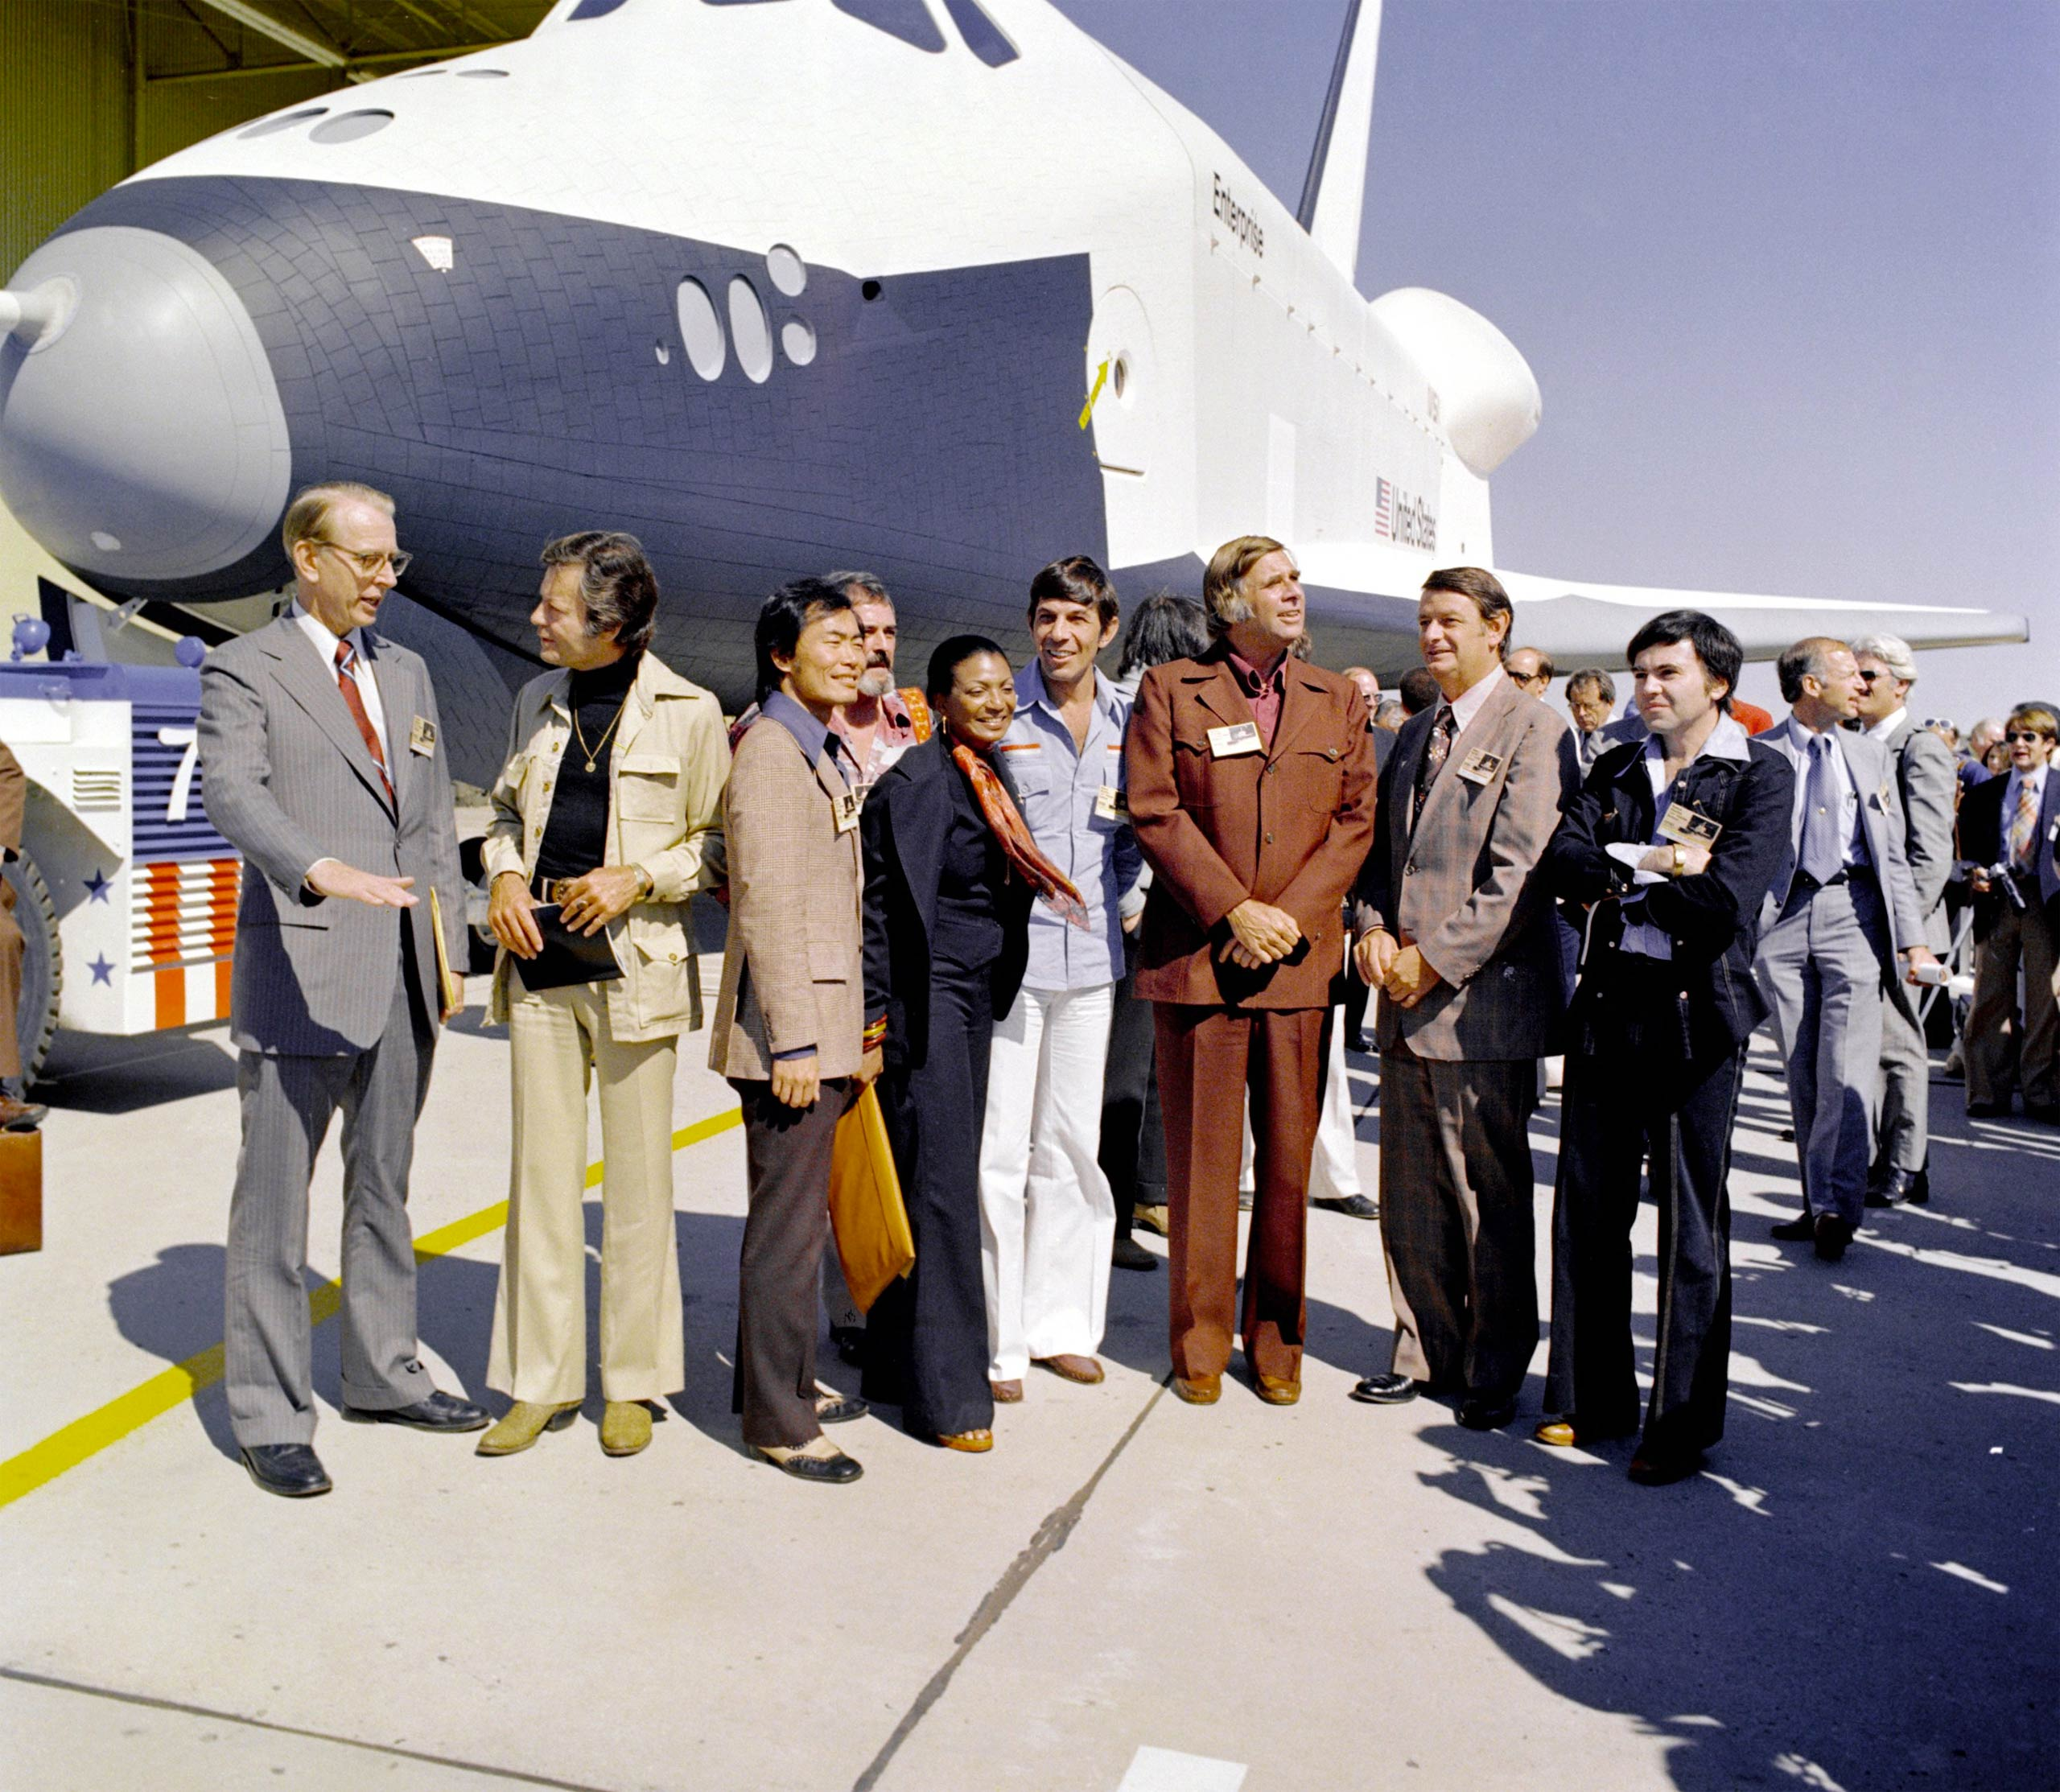 "NASA's space shuttle Enterprise rolled out of the Palmdale manufacturing facilities and was greeted by NASA officials and cast members from <i> Star Trek</i> in 1976. From left: NASA Administrator Dr. James D. Fletcher; DeForest Kelley, who portrayed Dr. ""Bones"" McCoy on the series; George Takei (Mr. Sulu); James Doohan (Chief Engineer Montgomery ""Scotty"" Scott); Nichelle Nichols (Lt. Uhura); Leonard Nimoy (Mr. Spock); series creator Gene Roddenberry; an unnamed NASA official; and, Walter Koenig (Ensign Pavel Chekov)."